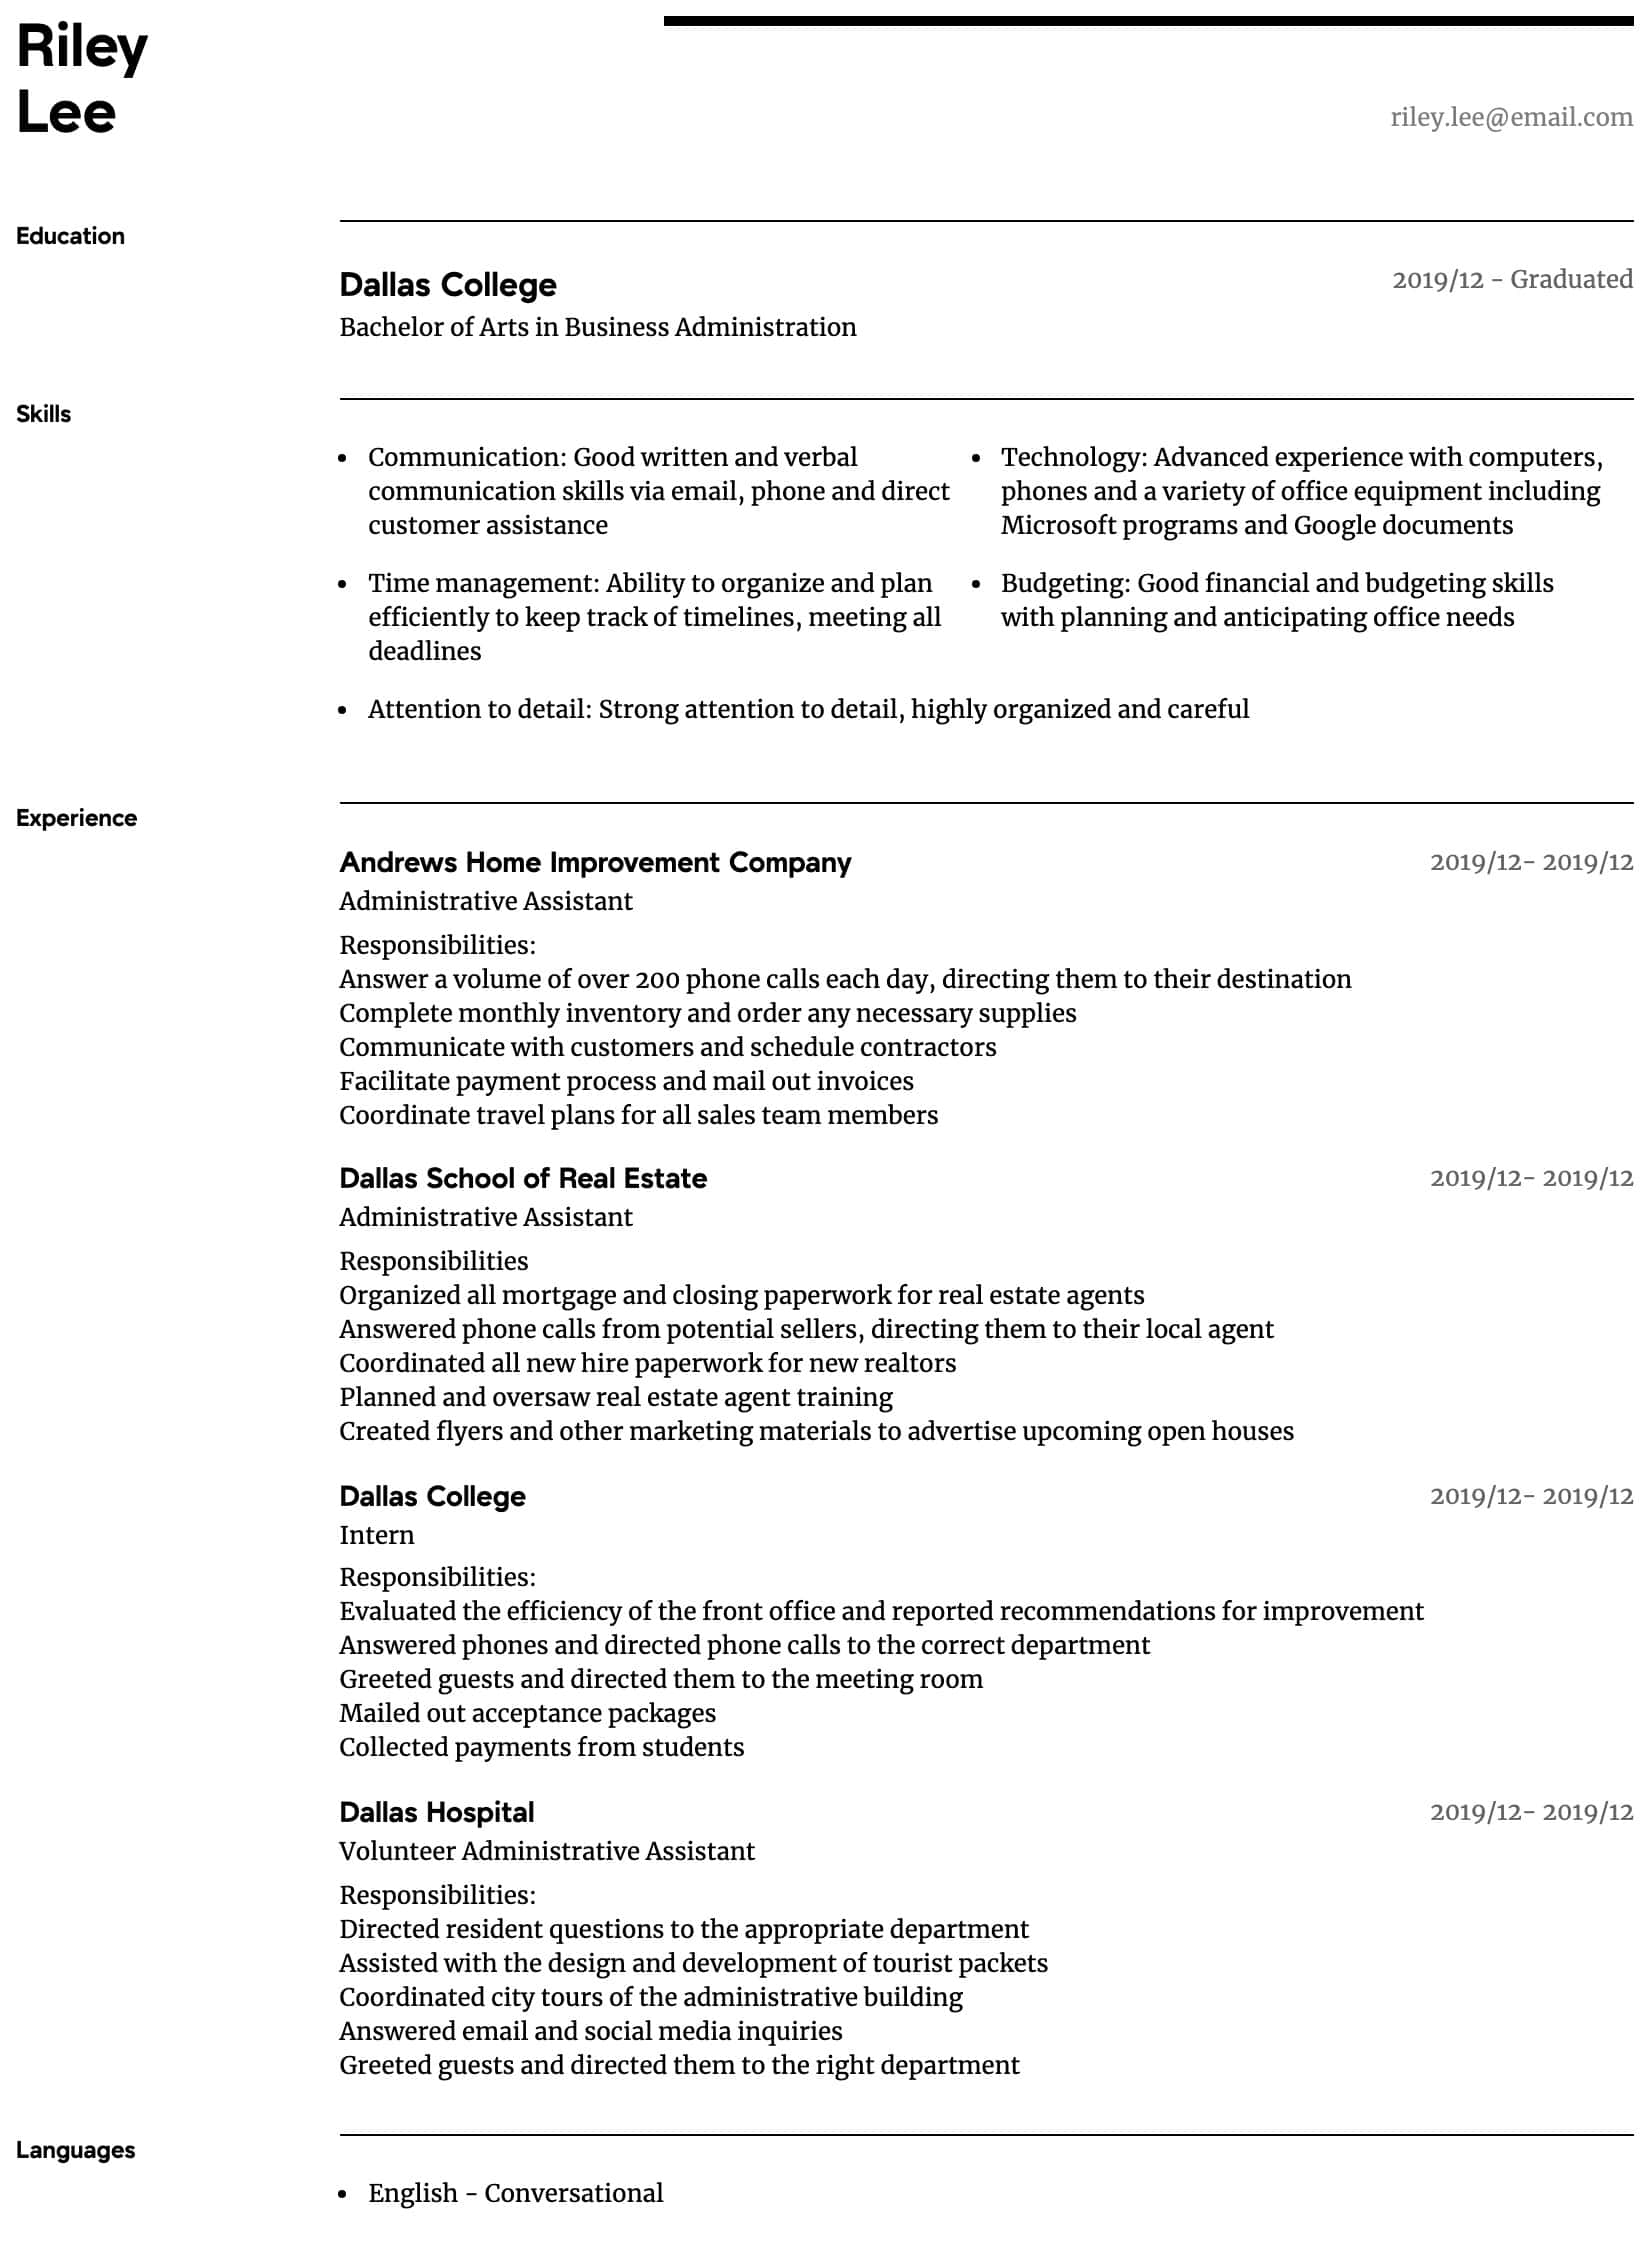 administrative assistant resume samples all experience levels admin format intermediate Resume Admin Assistant Resume Format